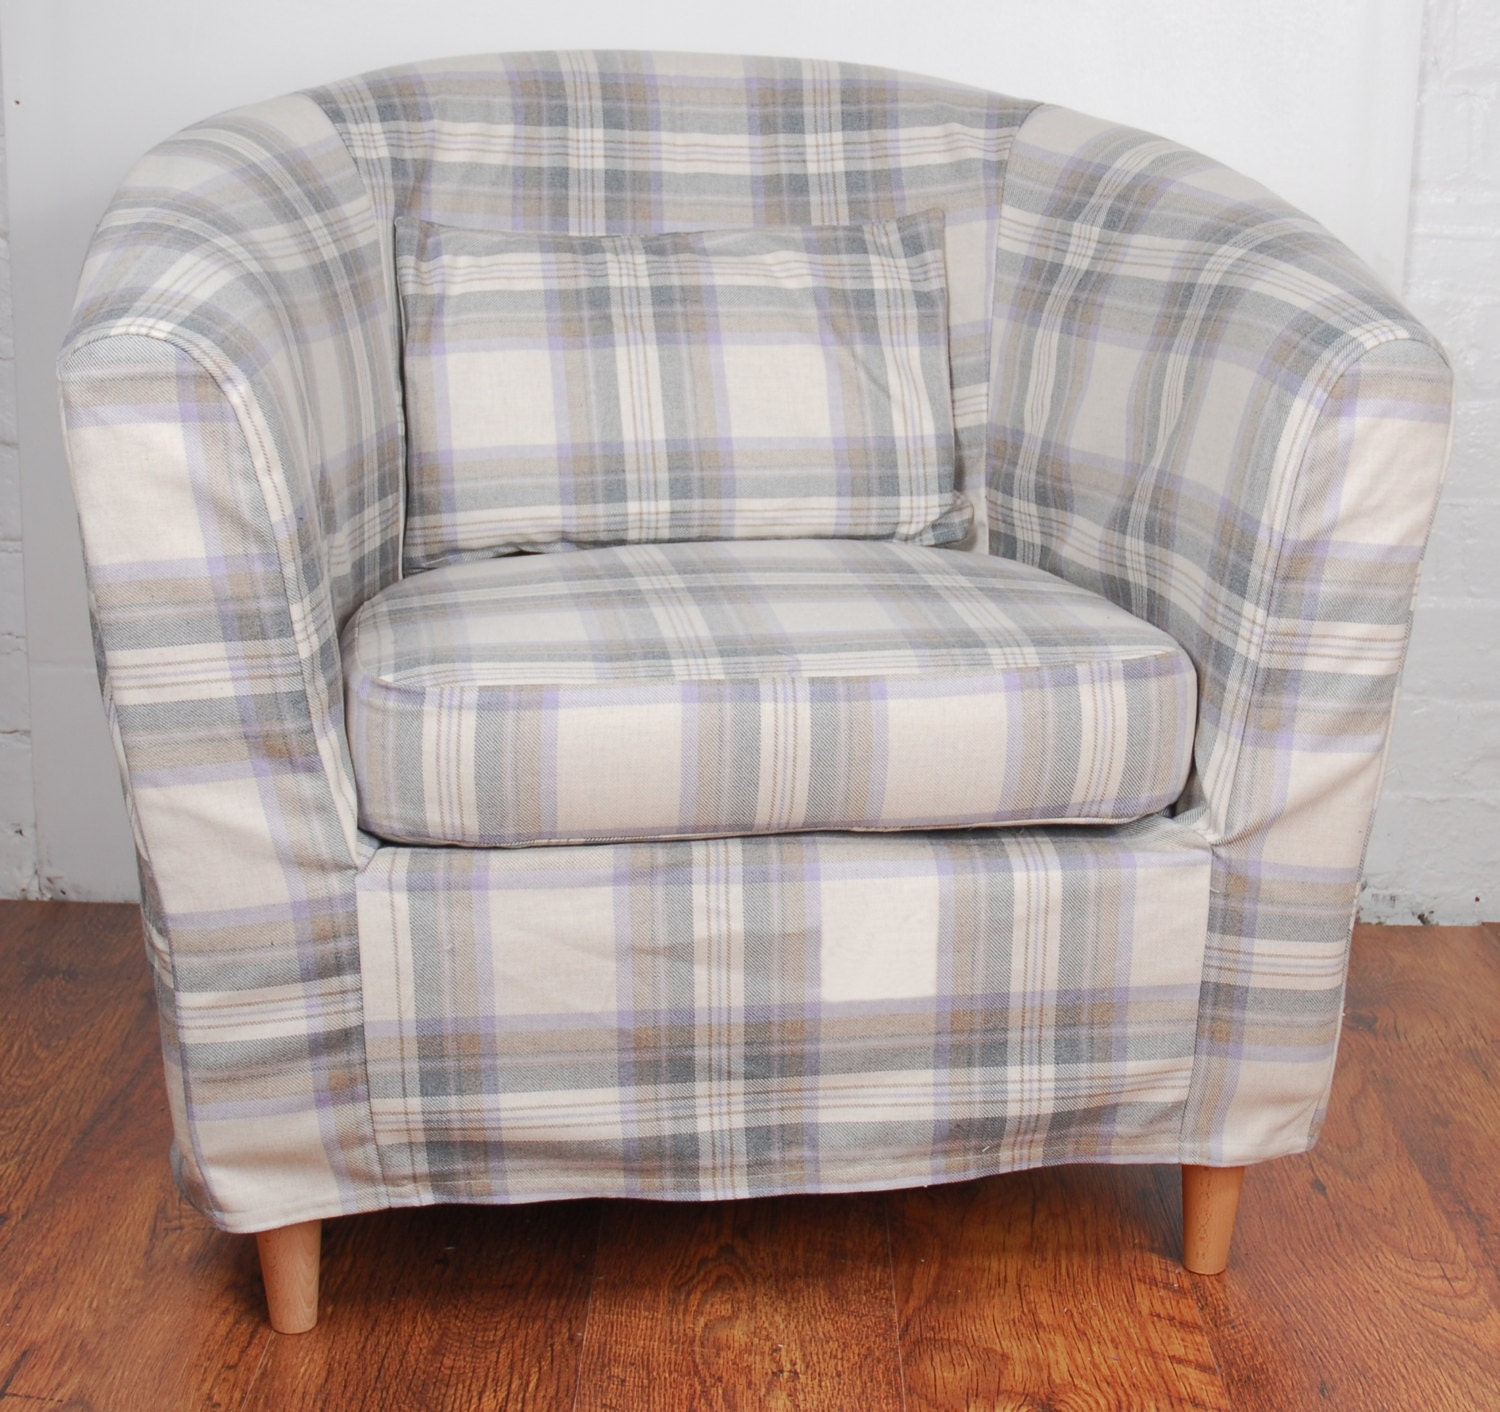 slip cover for the ikea ektorp tullsta tub chair grey tartan. Black Bedroom Furniture Sets. Home Design Ideas